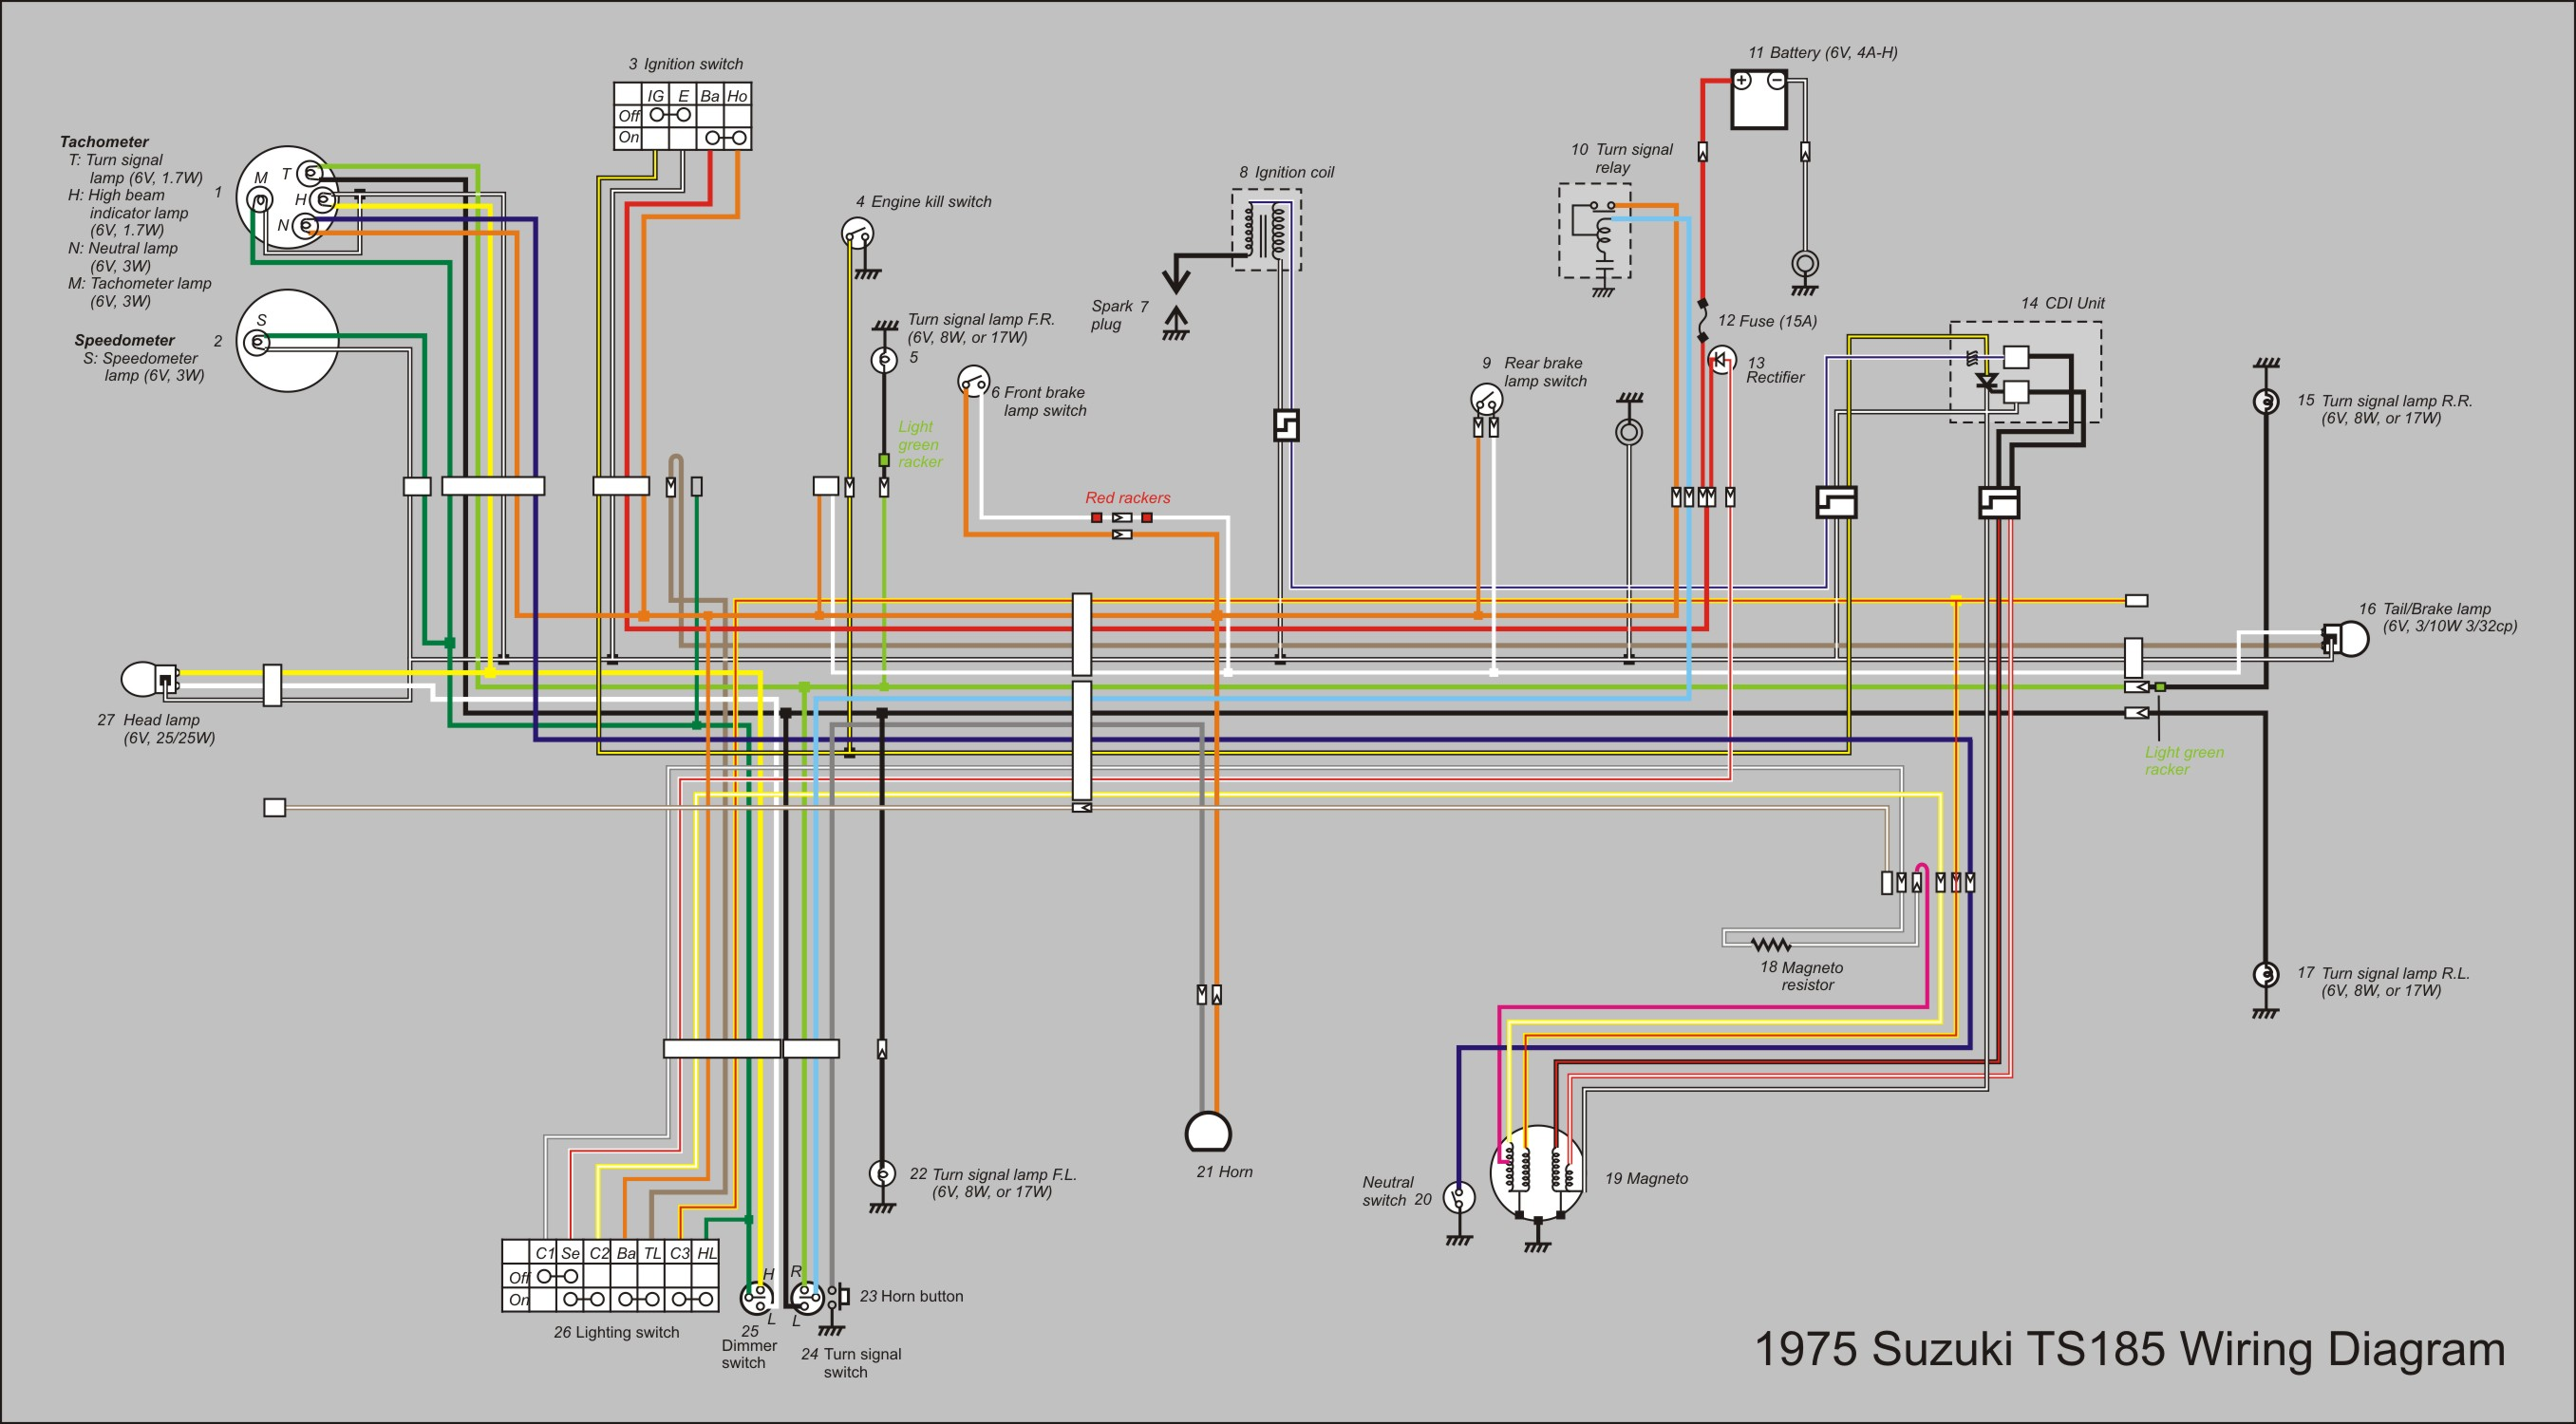 TS185_Wiring_Diagram_new file ts185 wiring diagram new jpg wikimedia commons yamaha dt 100 wiring diagram at bakdesigns.co